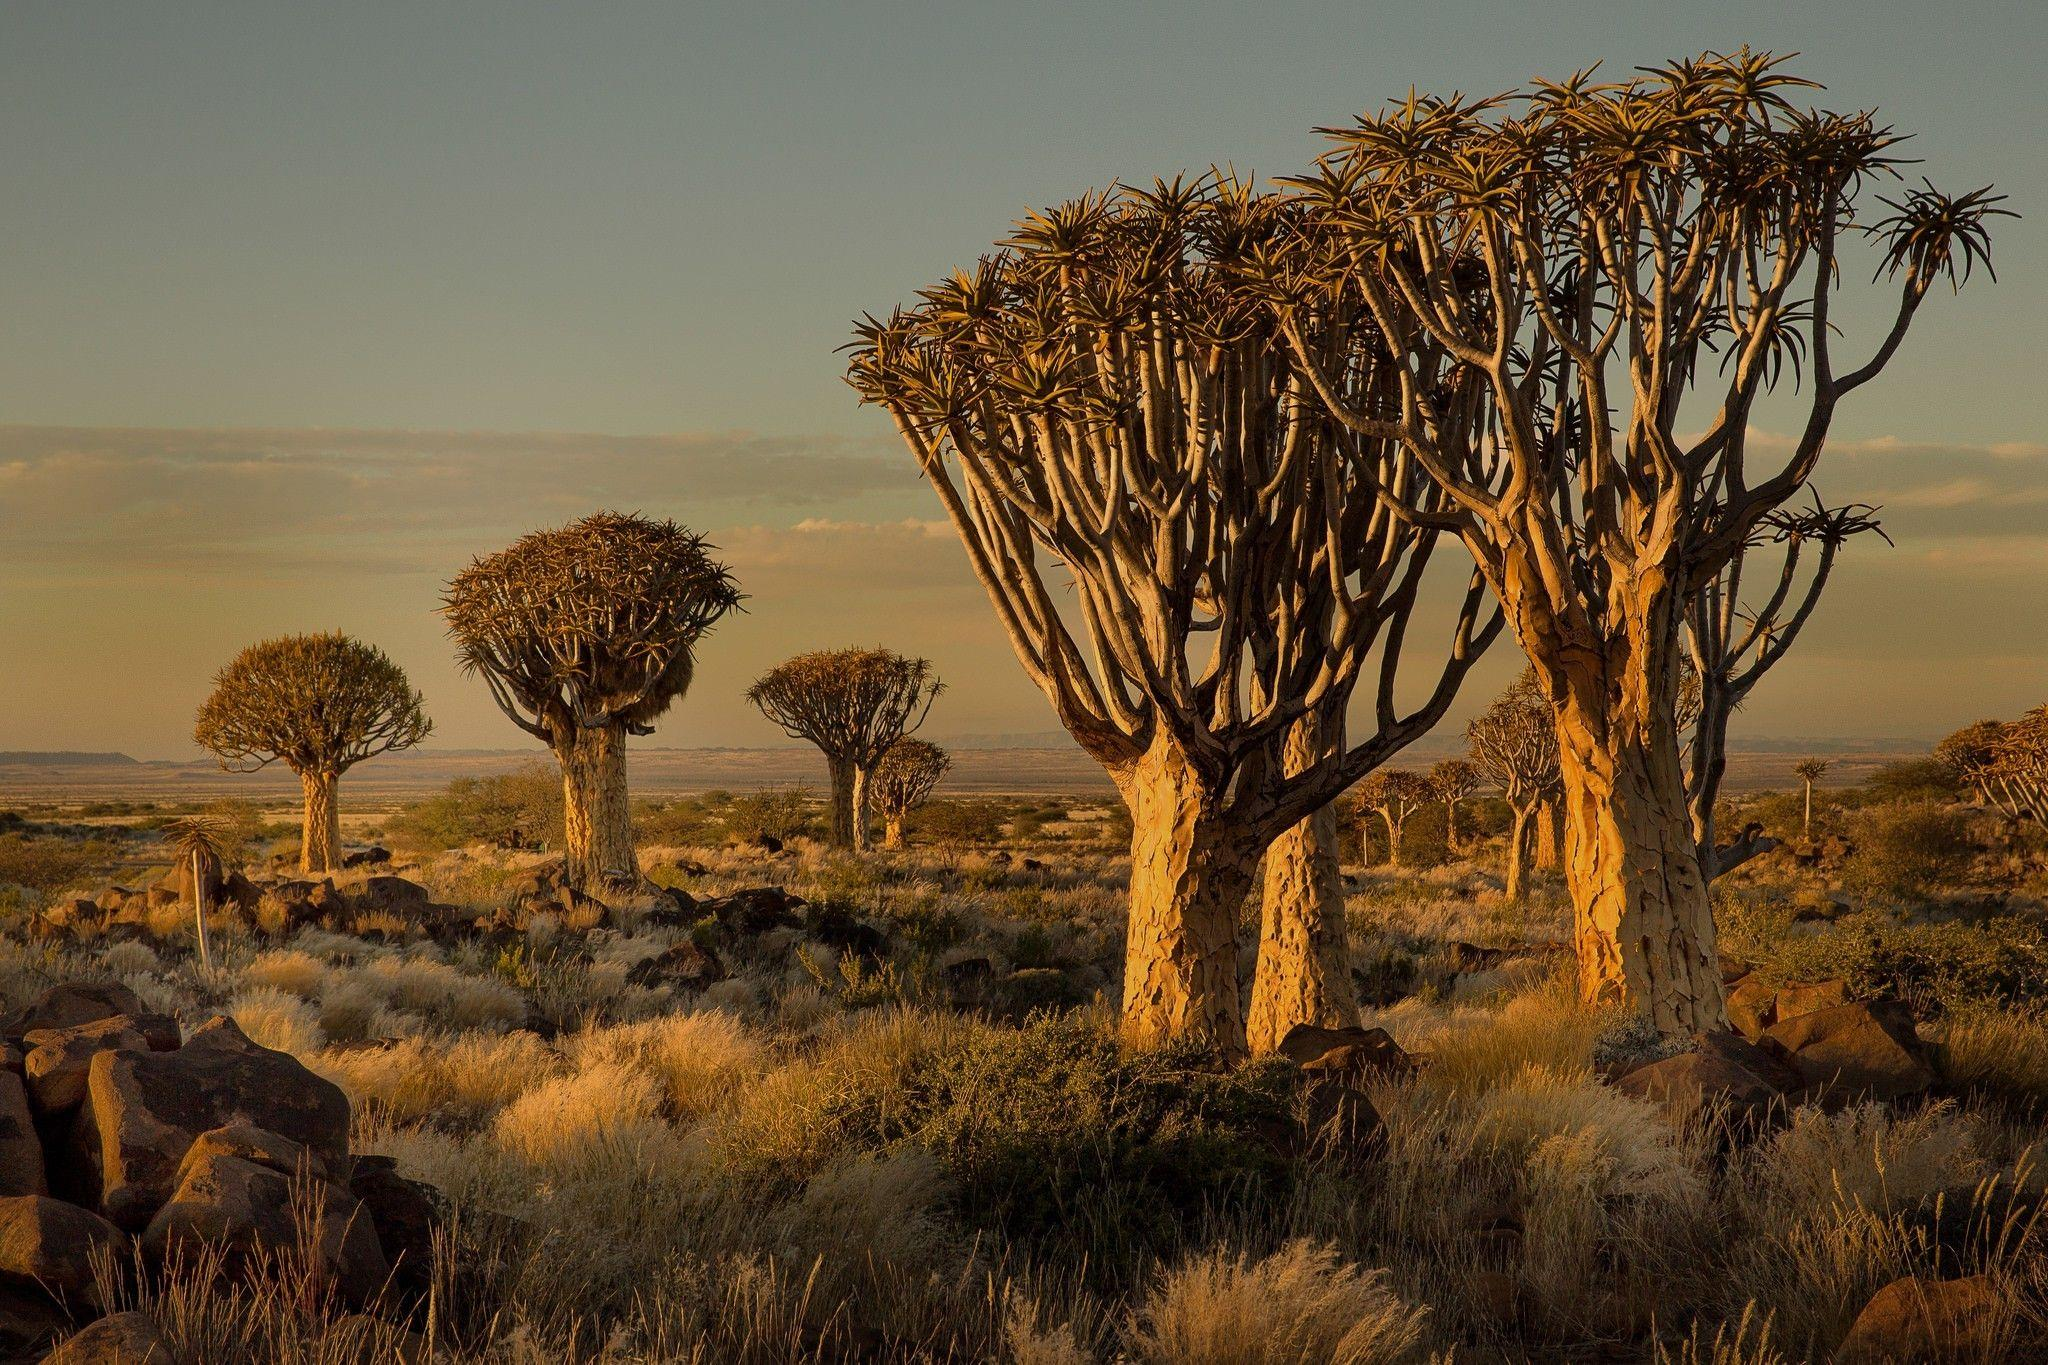 Namibia, Africa, Nature, Landscape, Trees, Savannah, Shrubs ...